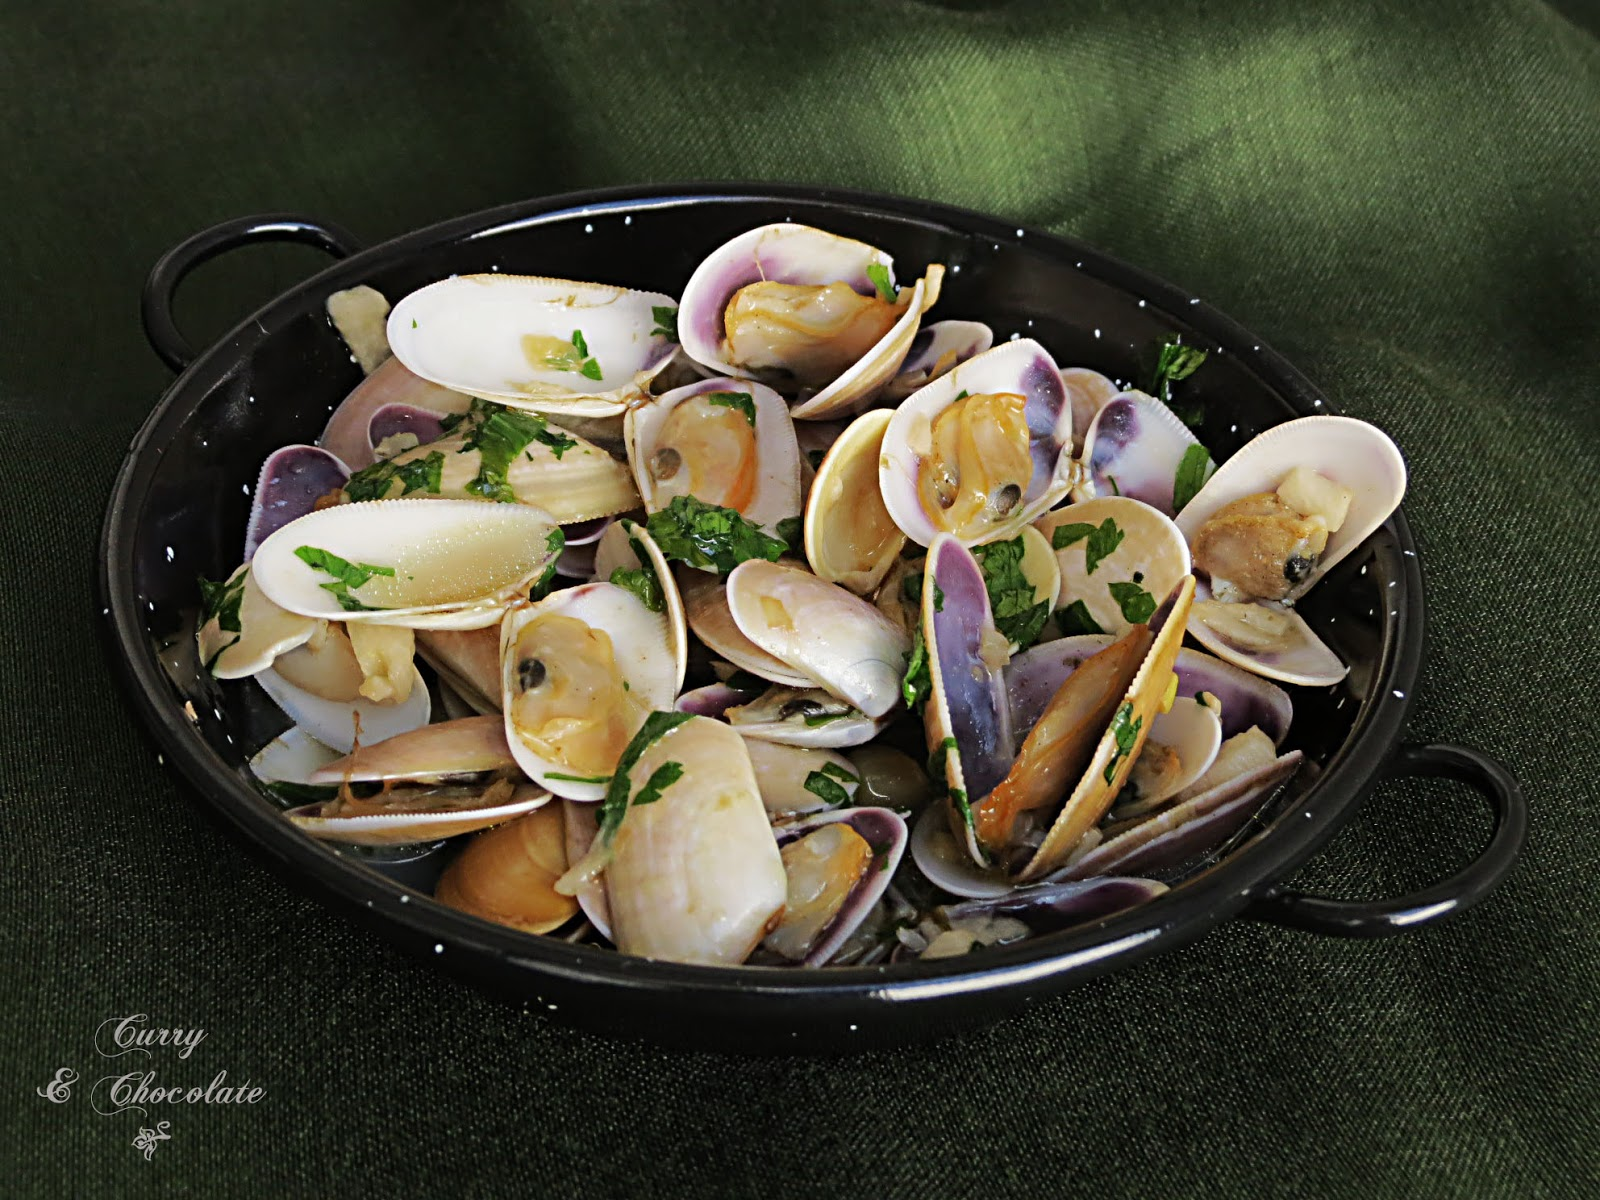 Coquinas al coñac o brandy – Wedge shell clams with brandy